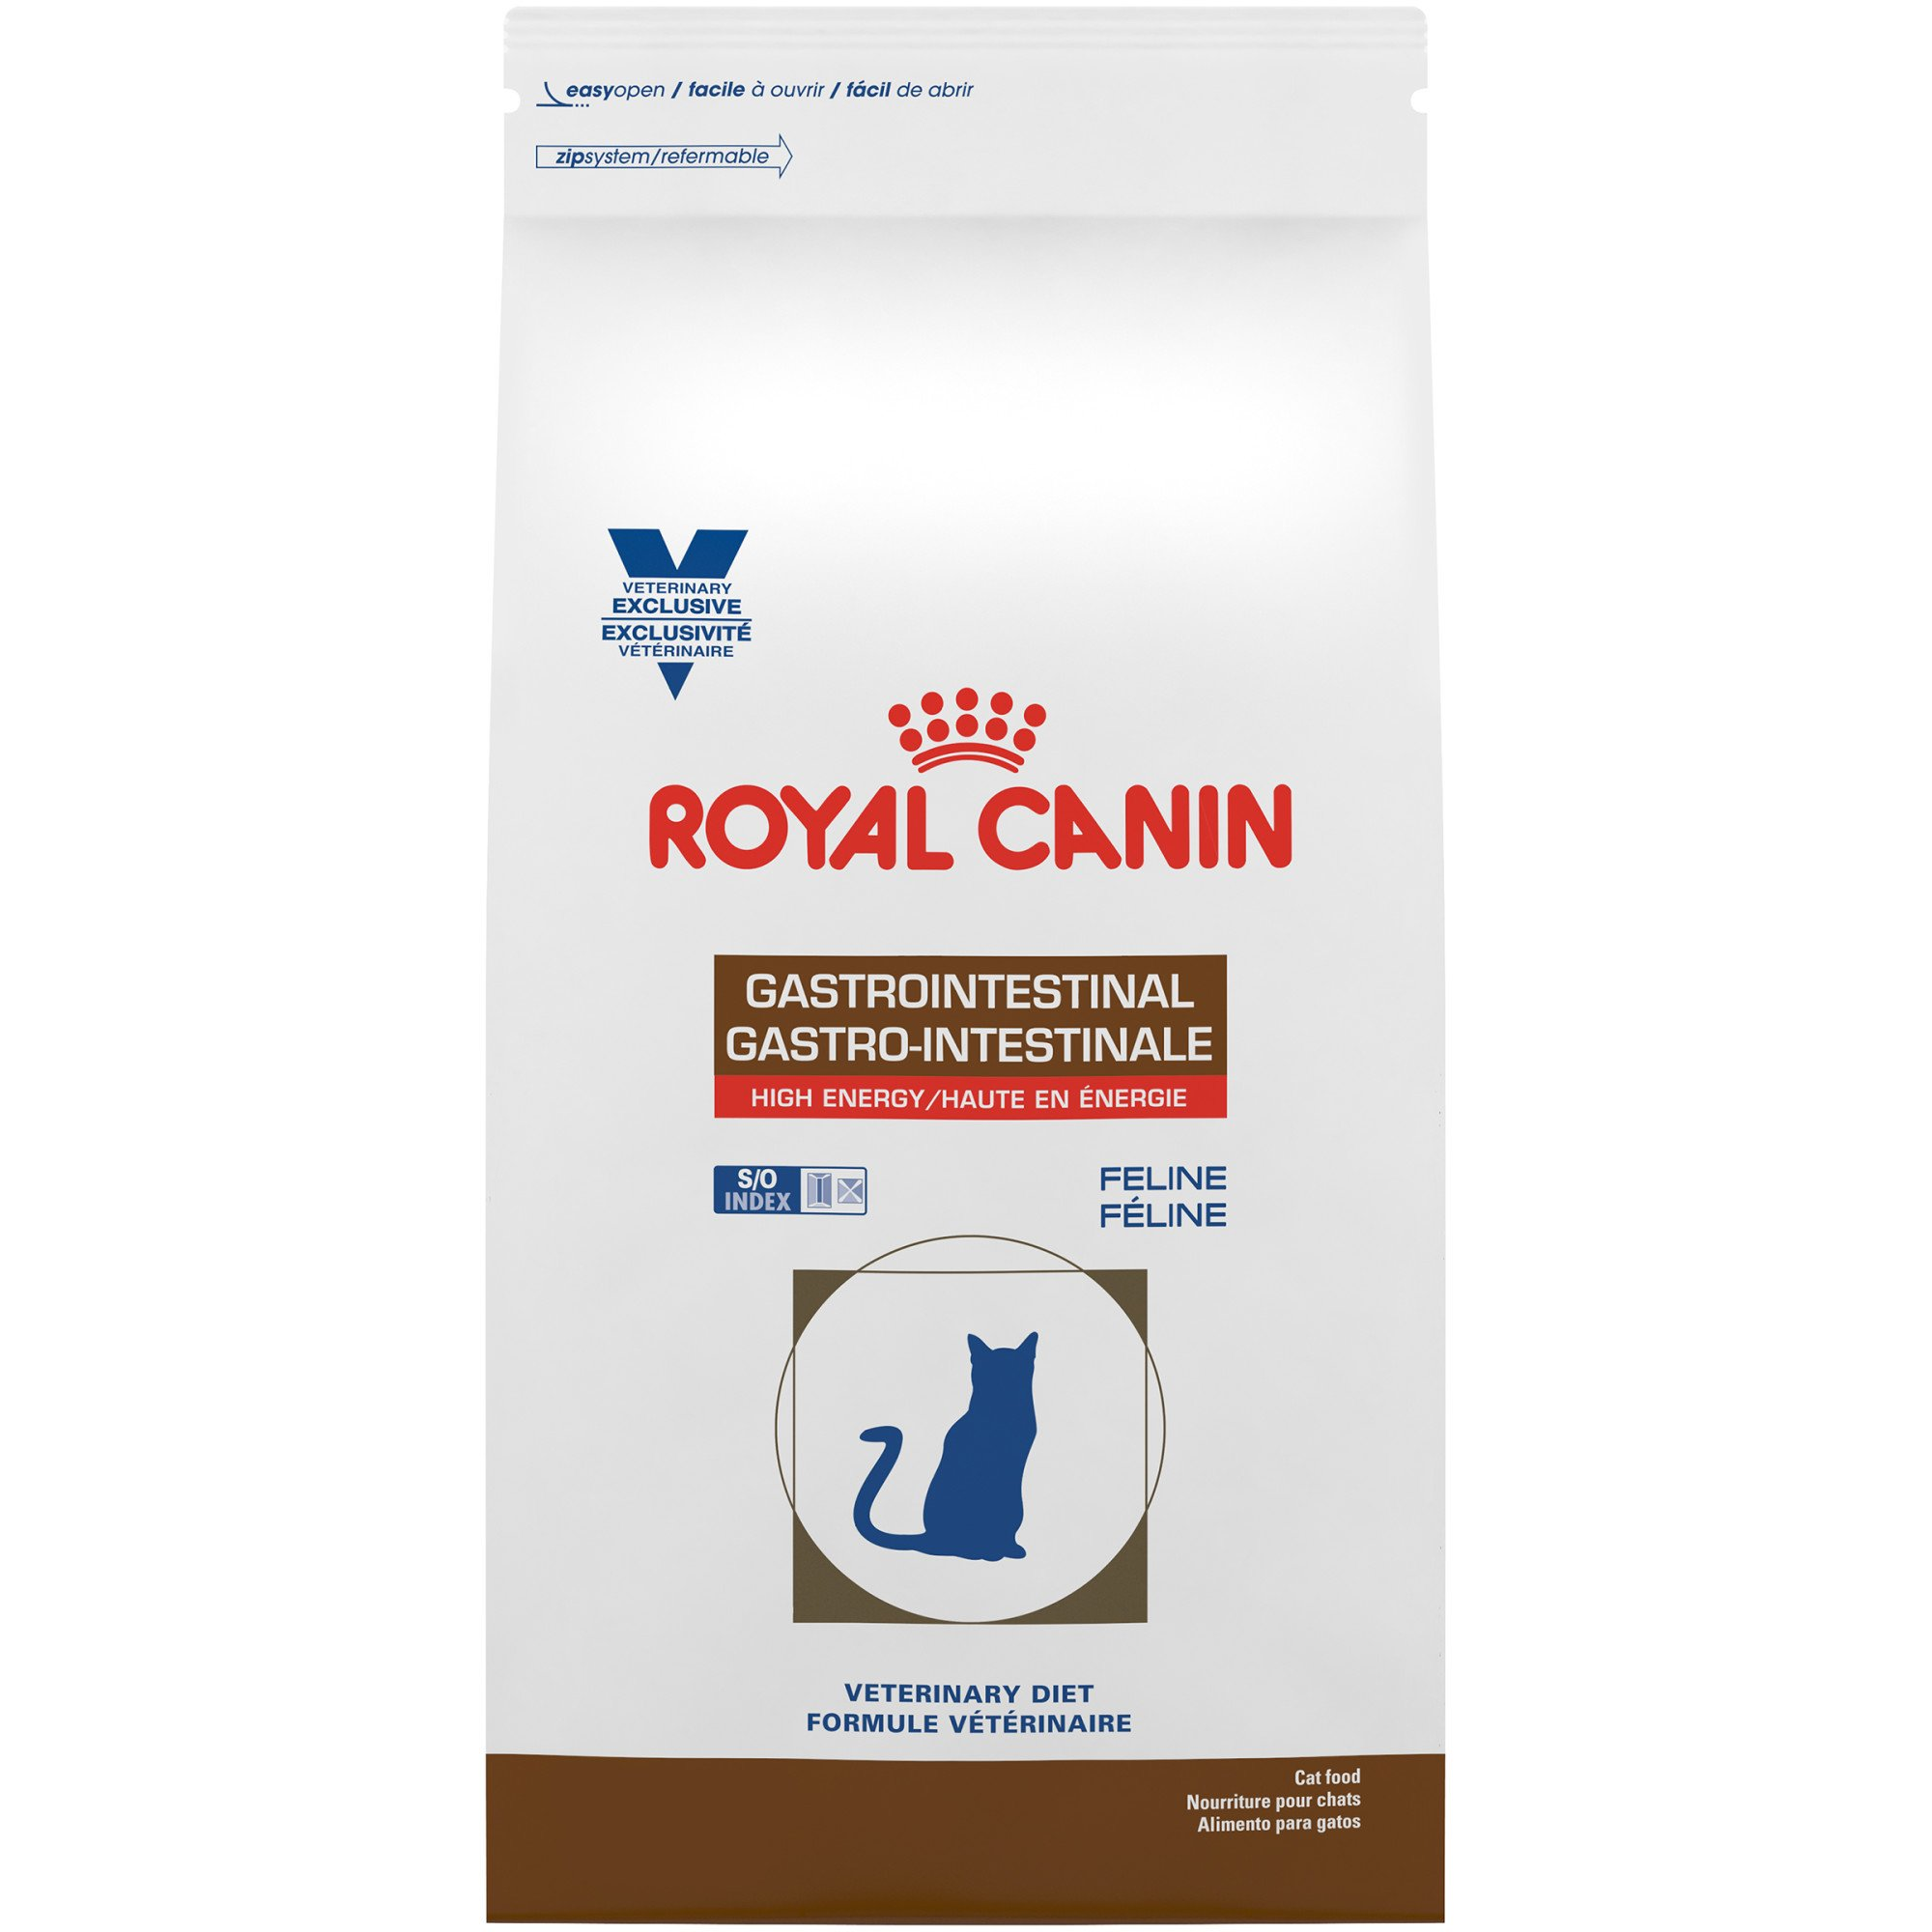 royal canin intestinal katze royal canin gastro intestinal katze bei royal canin feline gastro. Black Bedroom Furniture Sets. Home Design Ideas